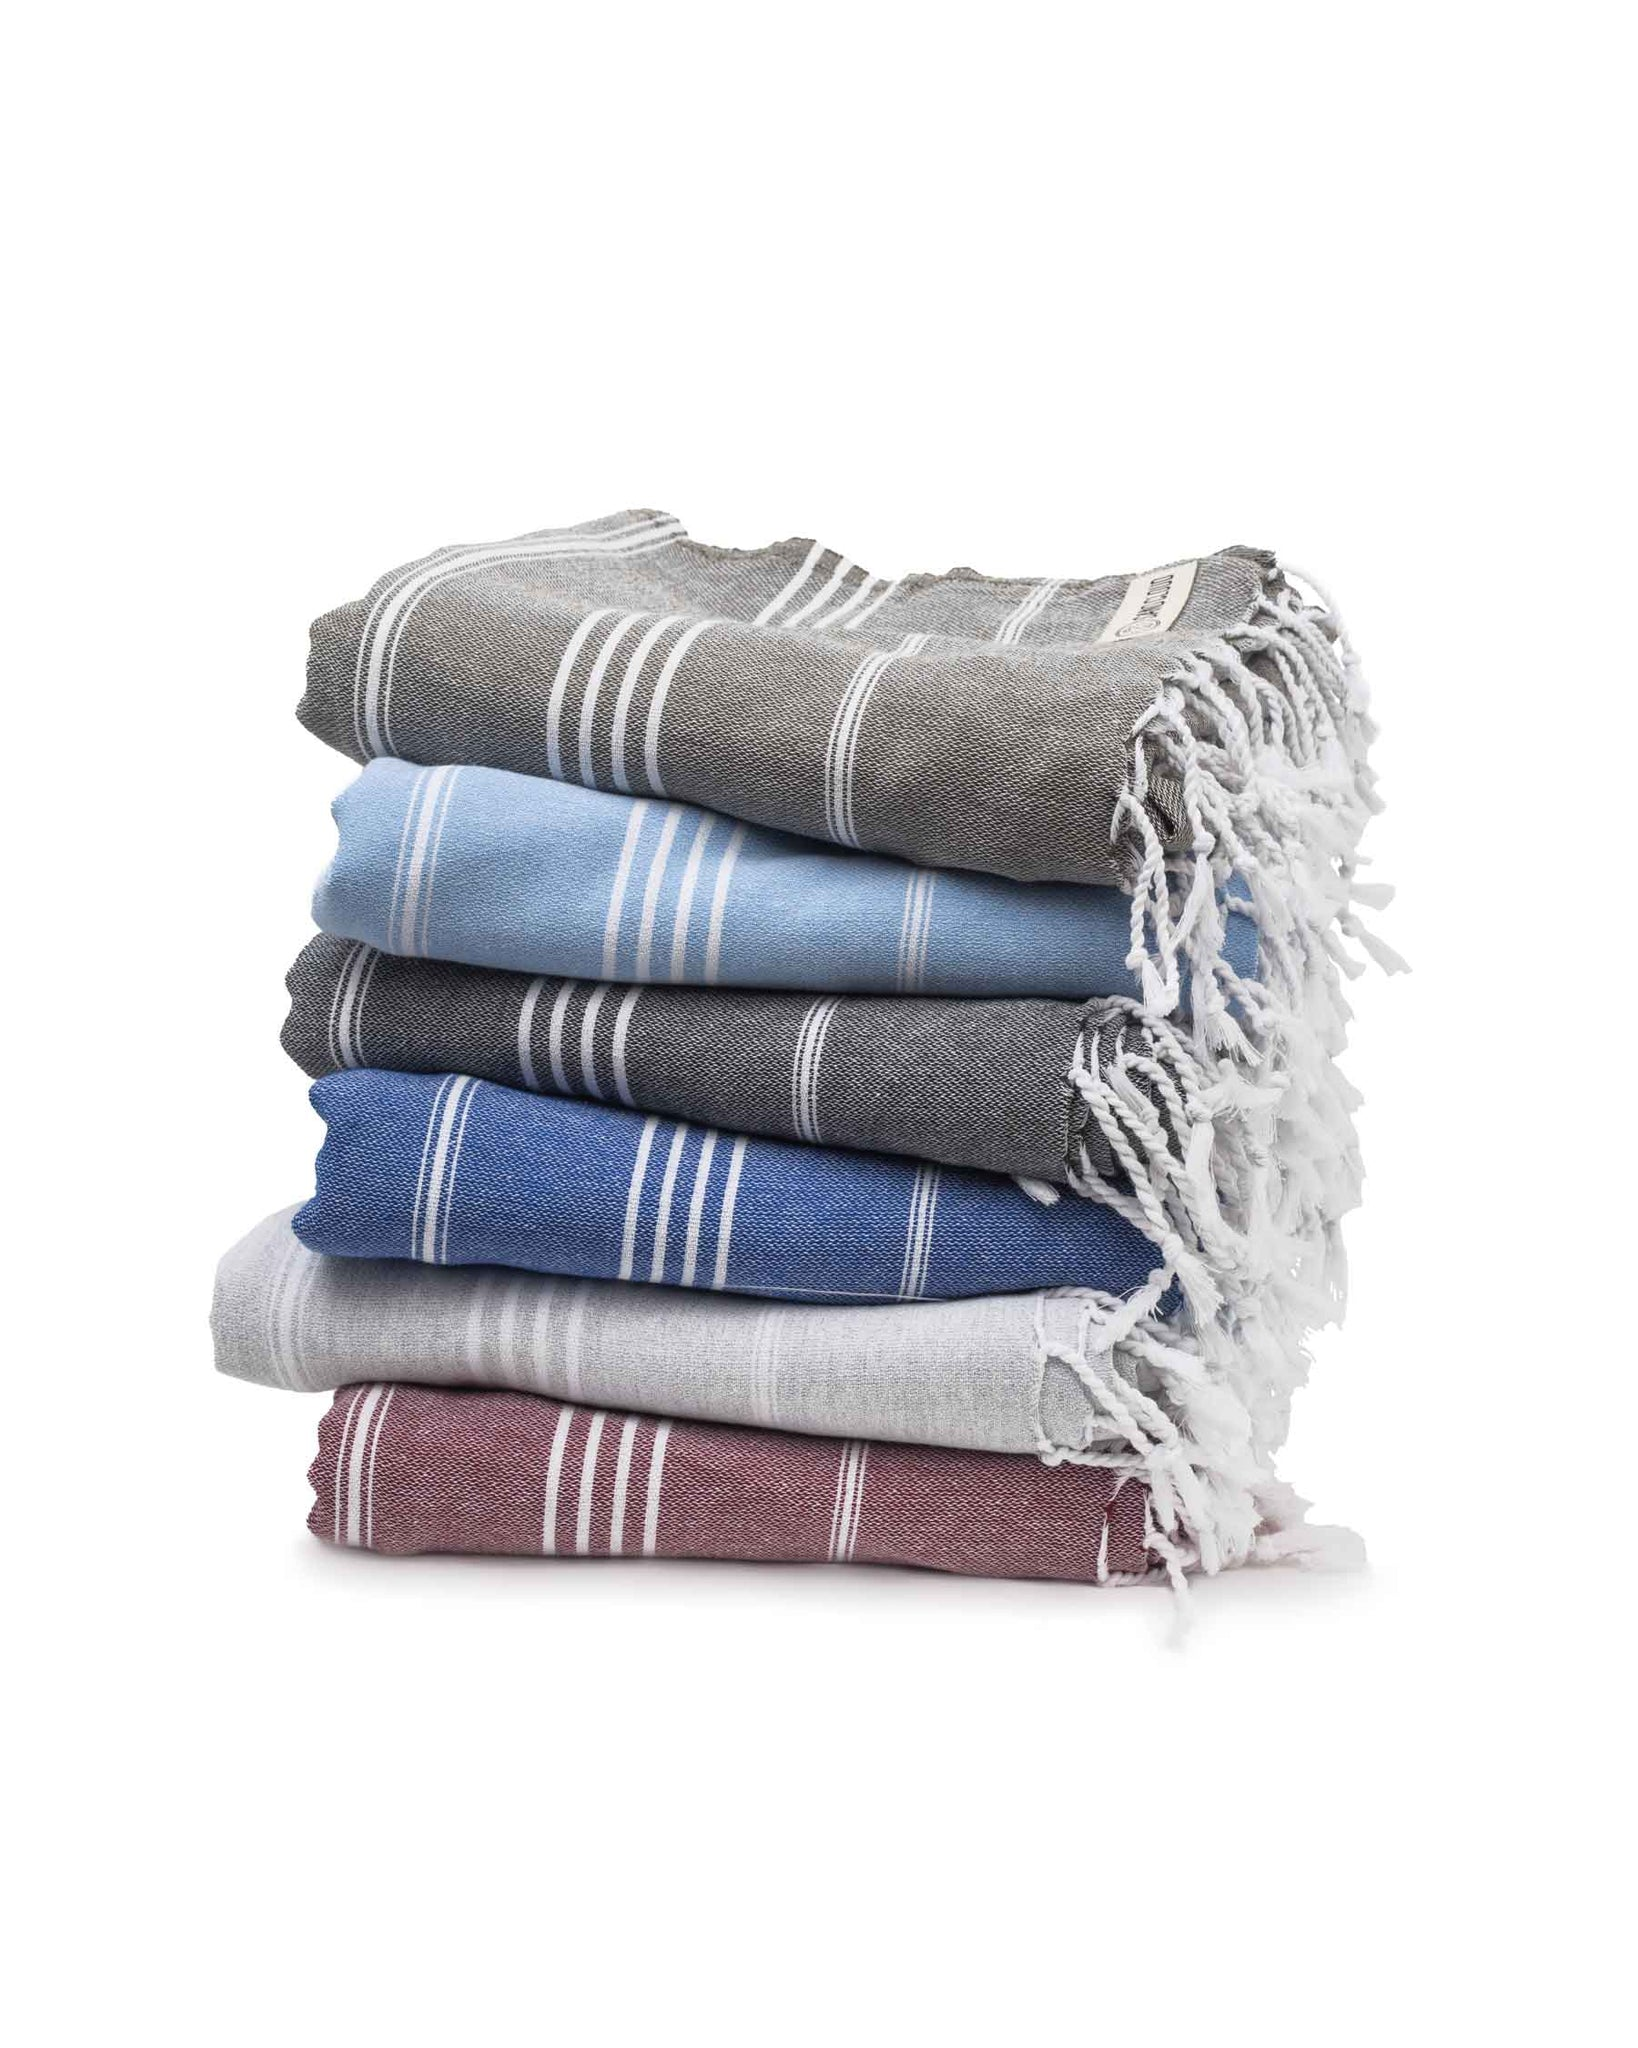 XL Classic Striped Eco Collection 6 Pack